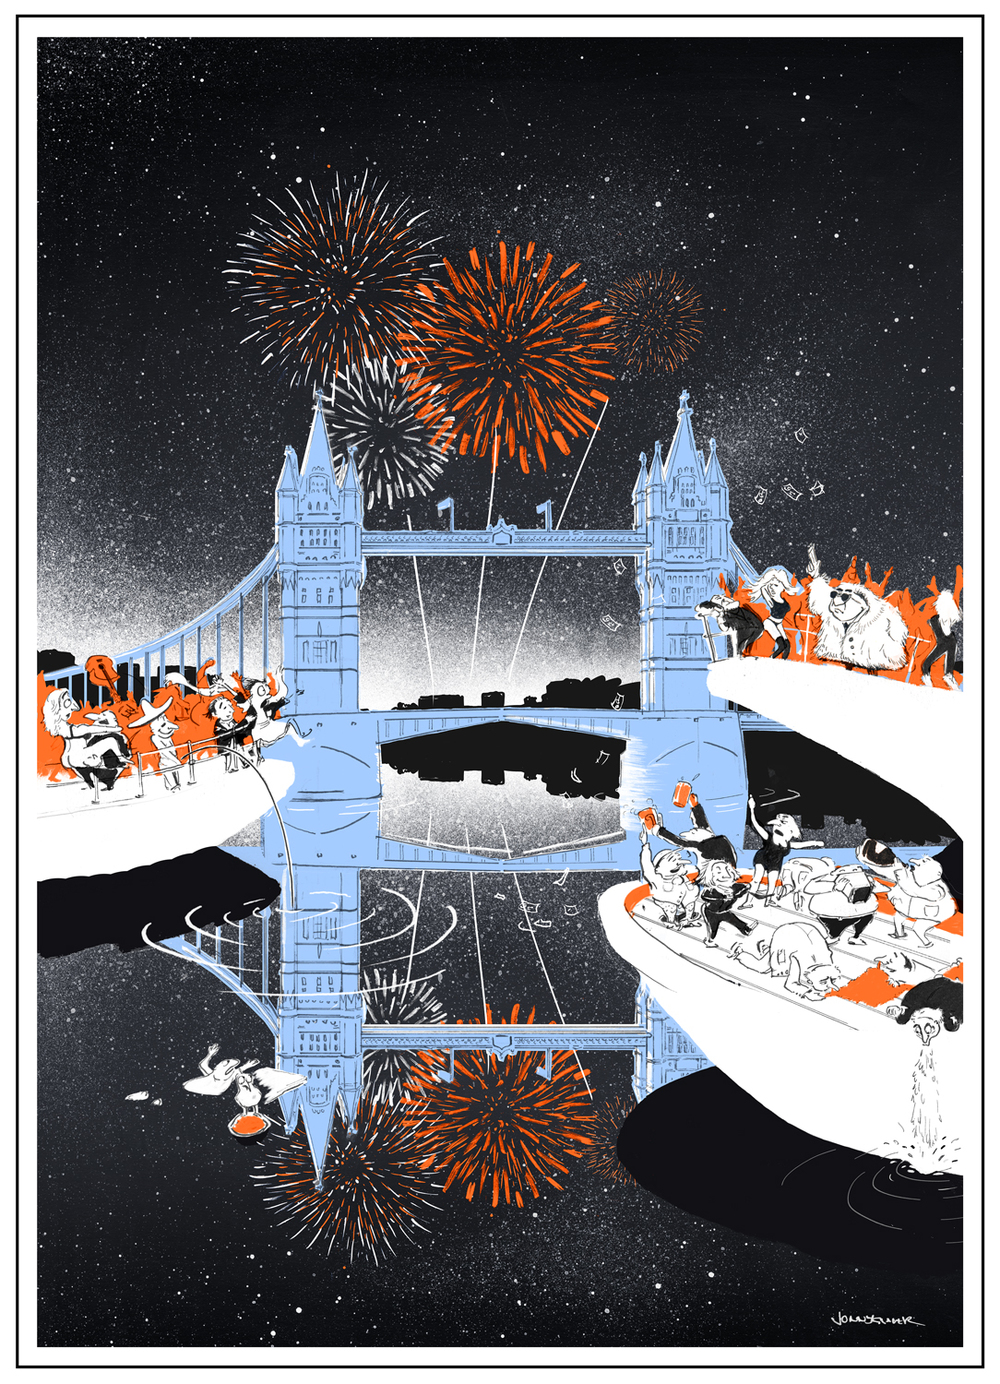 Happy New Year to you all! All the best for 2015 #London#illustration#NewYearsEve#Welcome2015